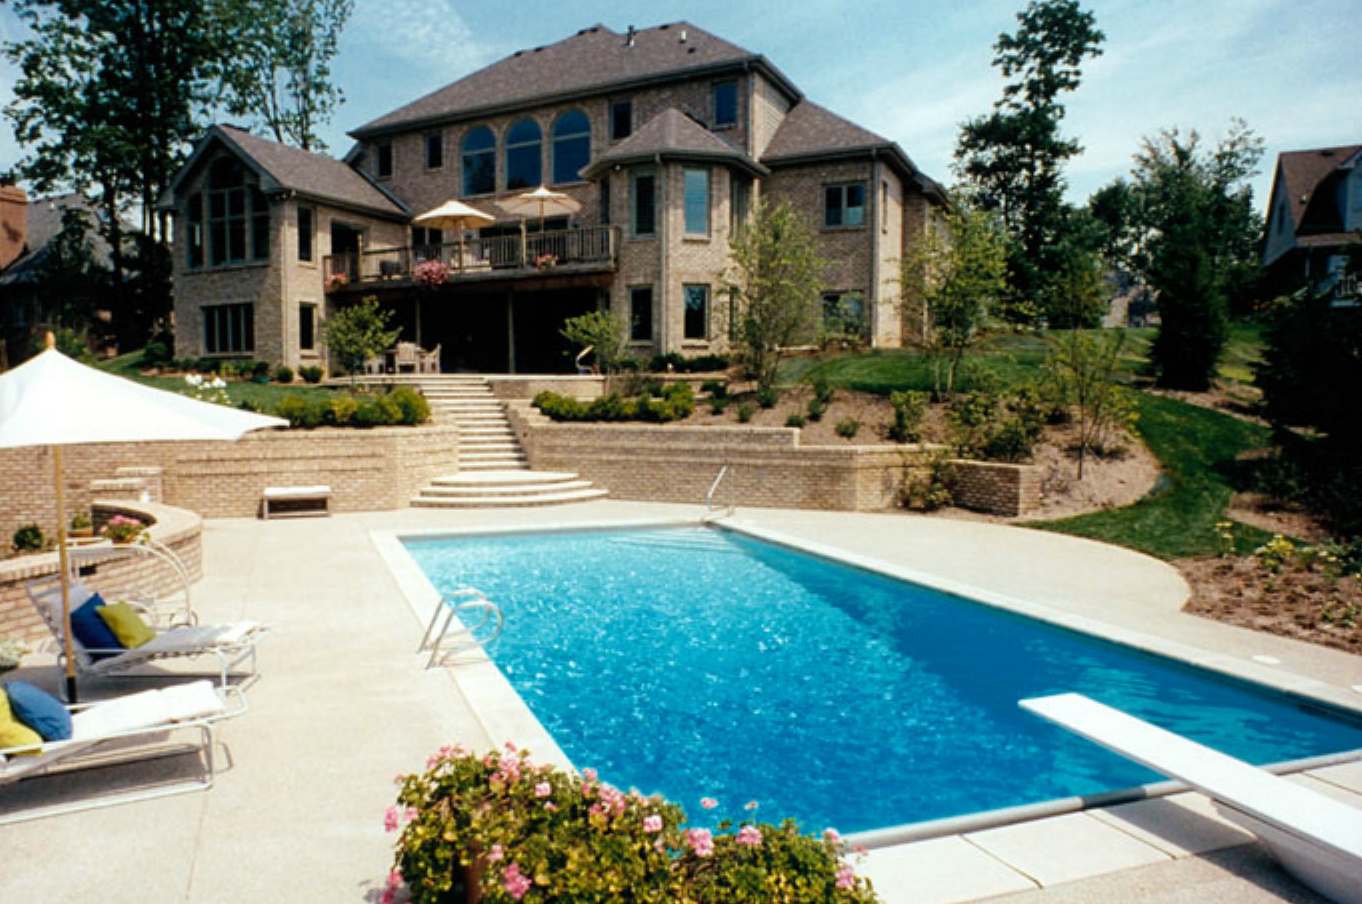 Classical Pool Design by Classic Pool & Patio. | Classic Pool ...